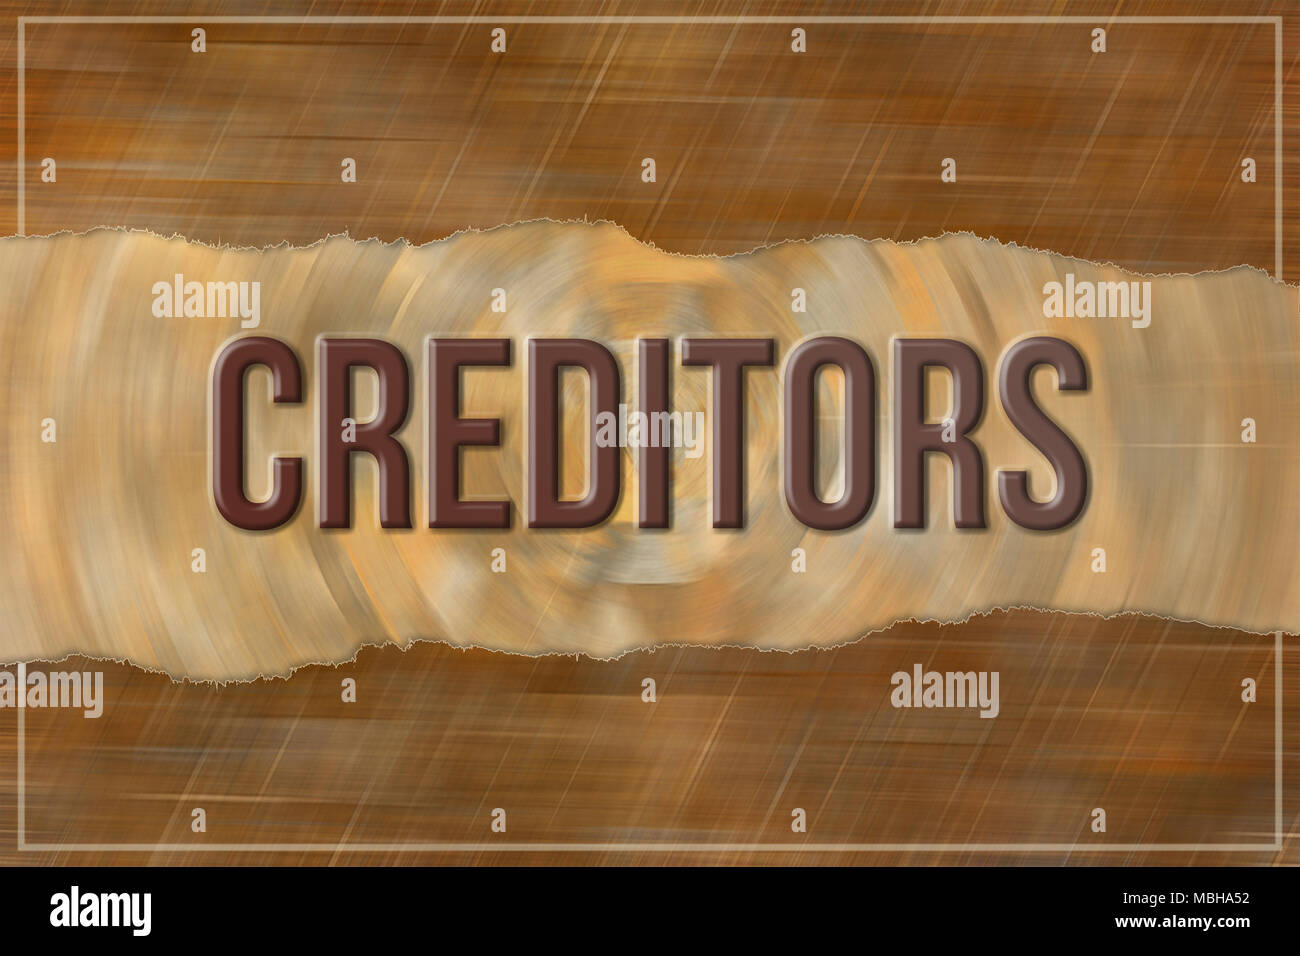 Creditors, business & finance conceptual words, with texture background for web page, graphic design, catalog or wallpaper. - Stock Image